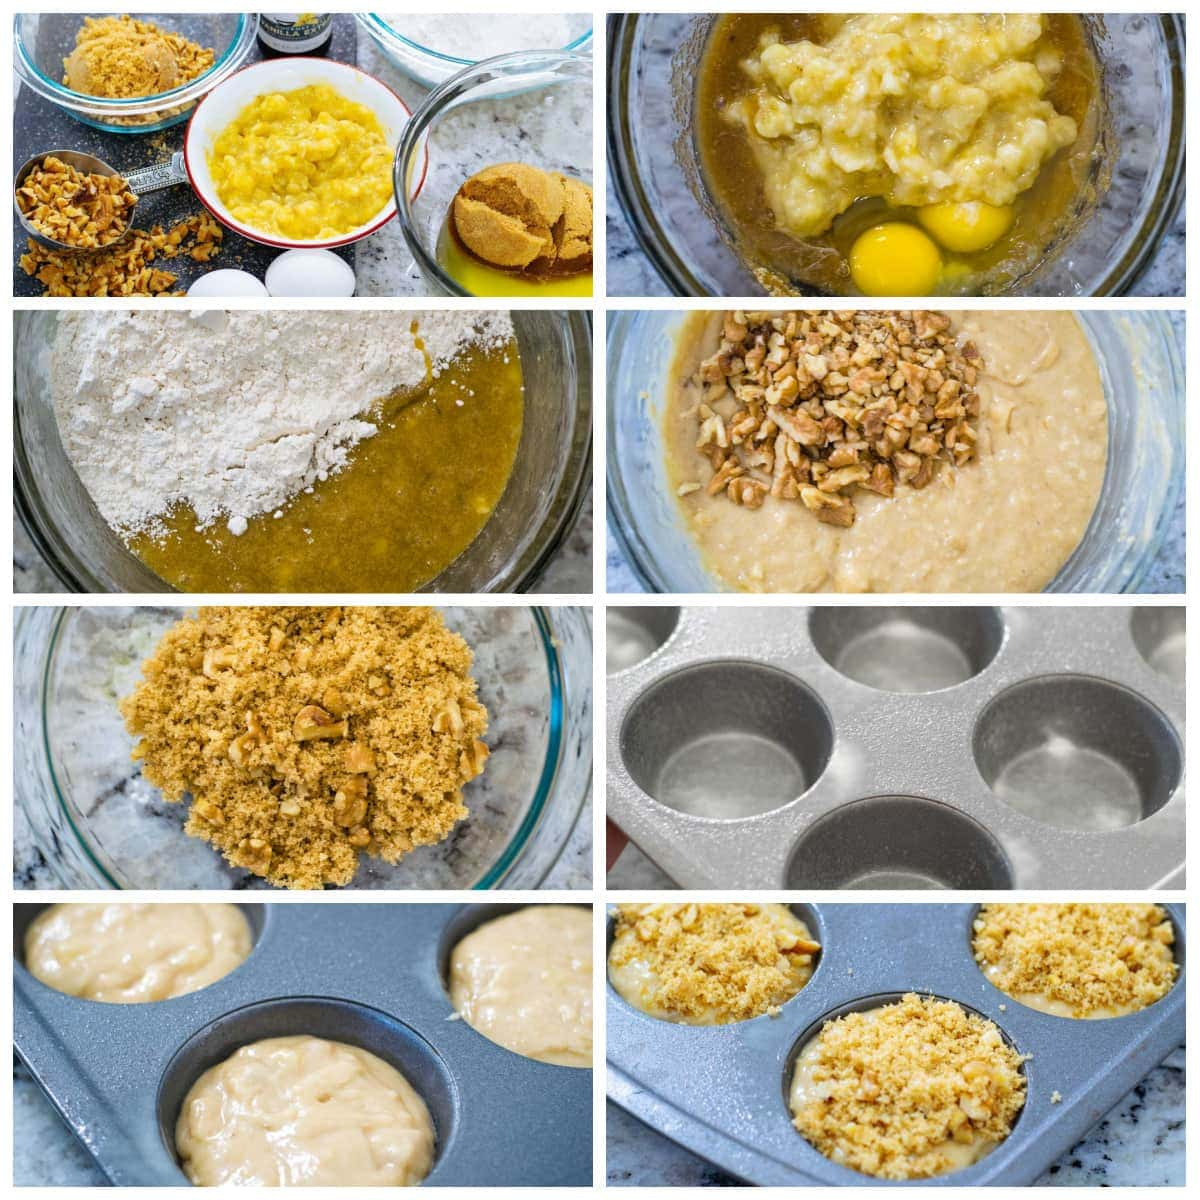 Banana Nut Muffin Ingredient and Instruction Picture Collage